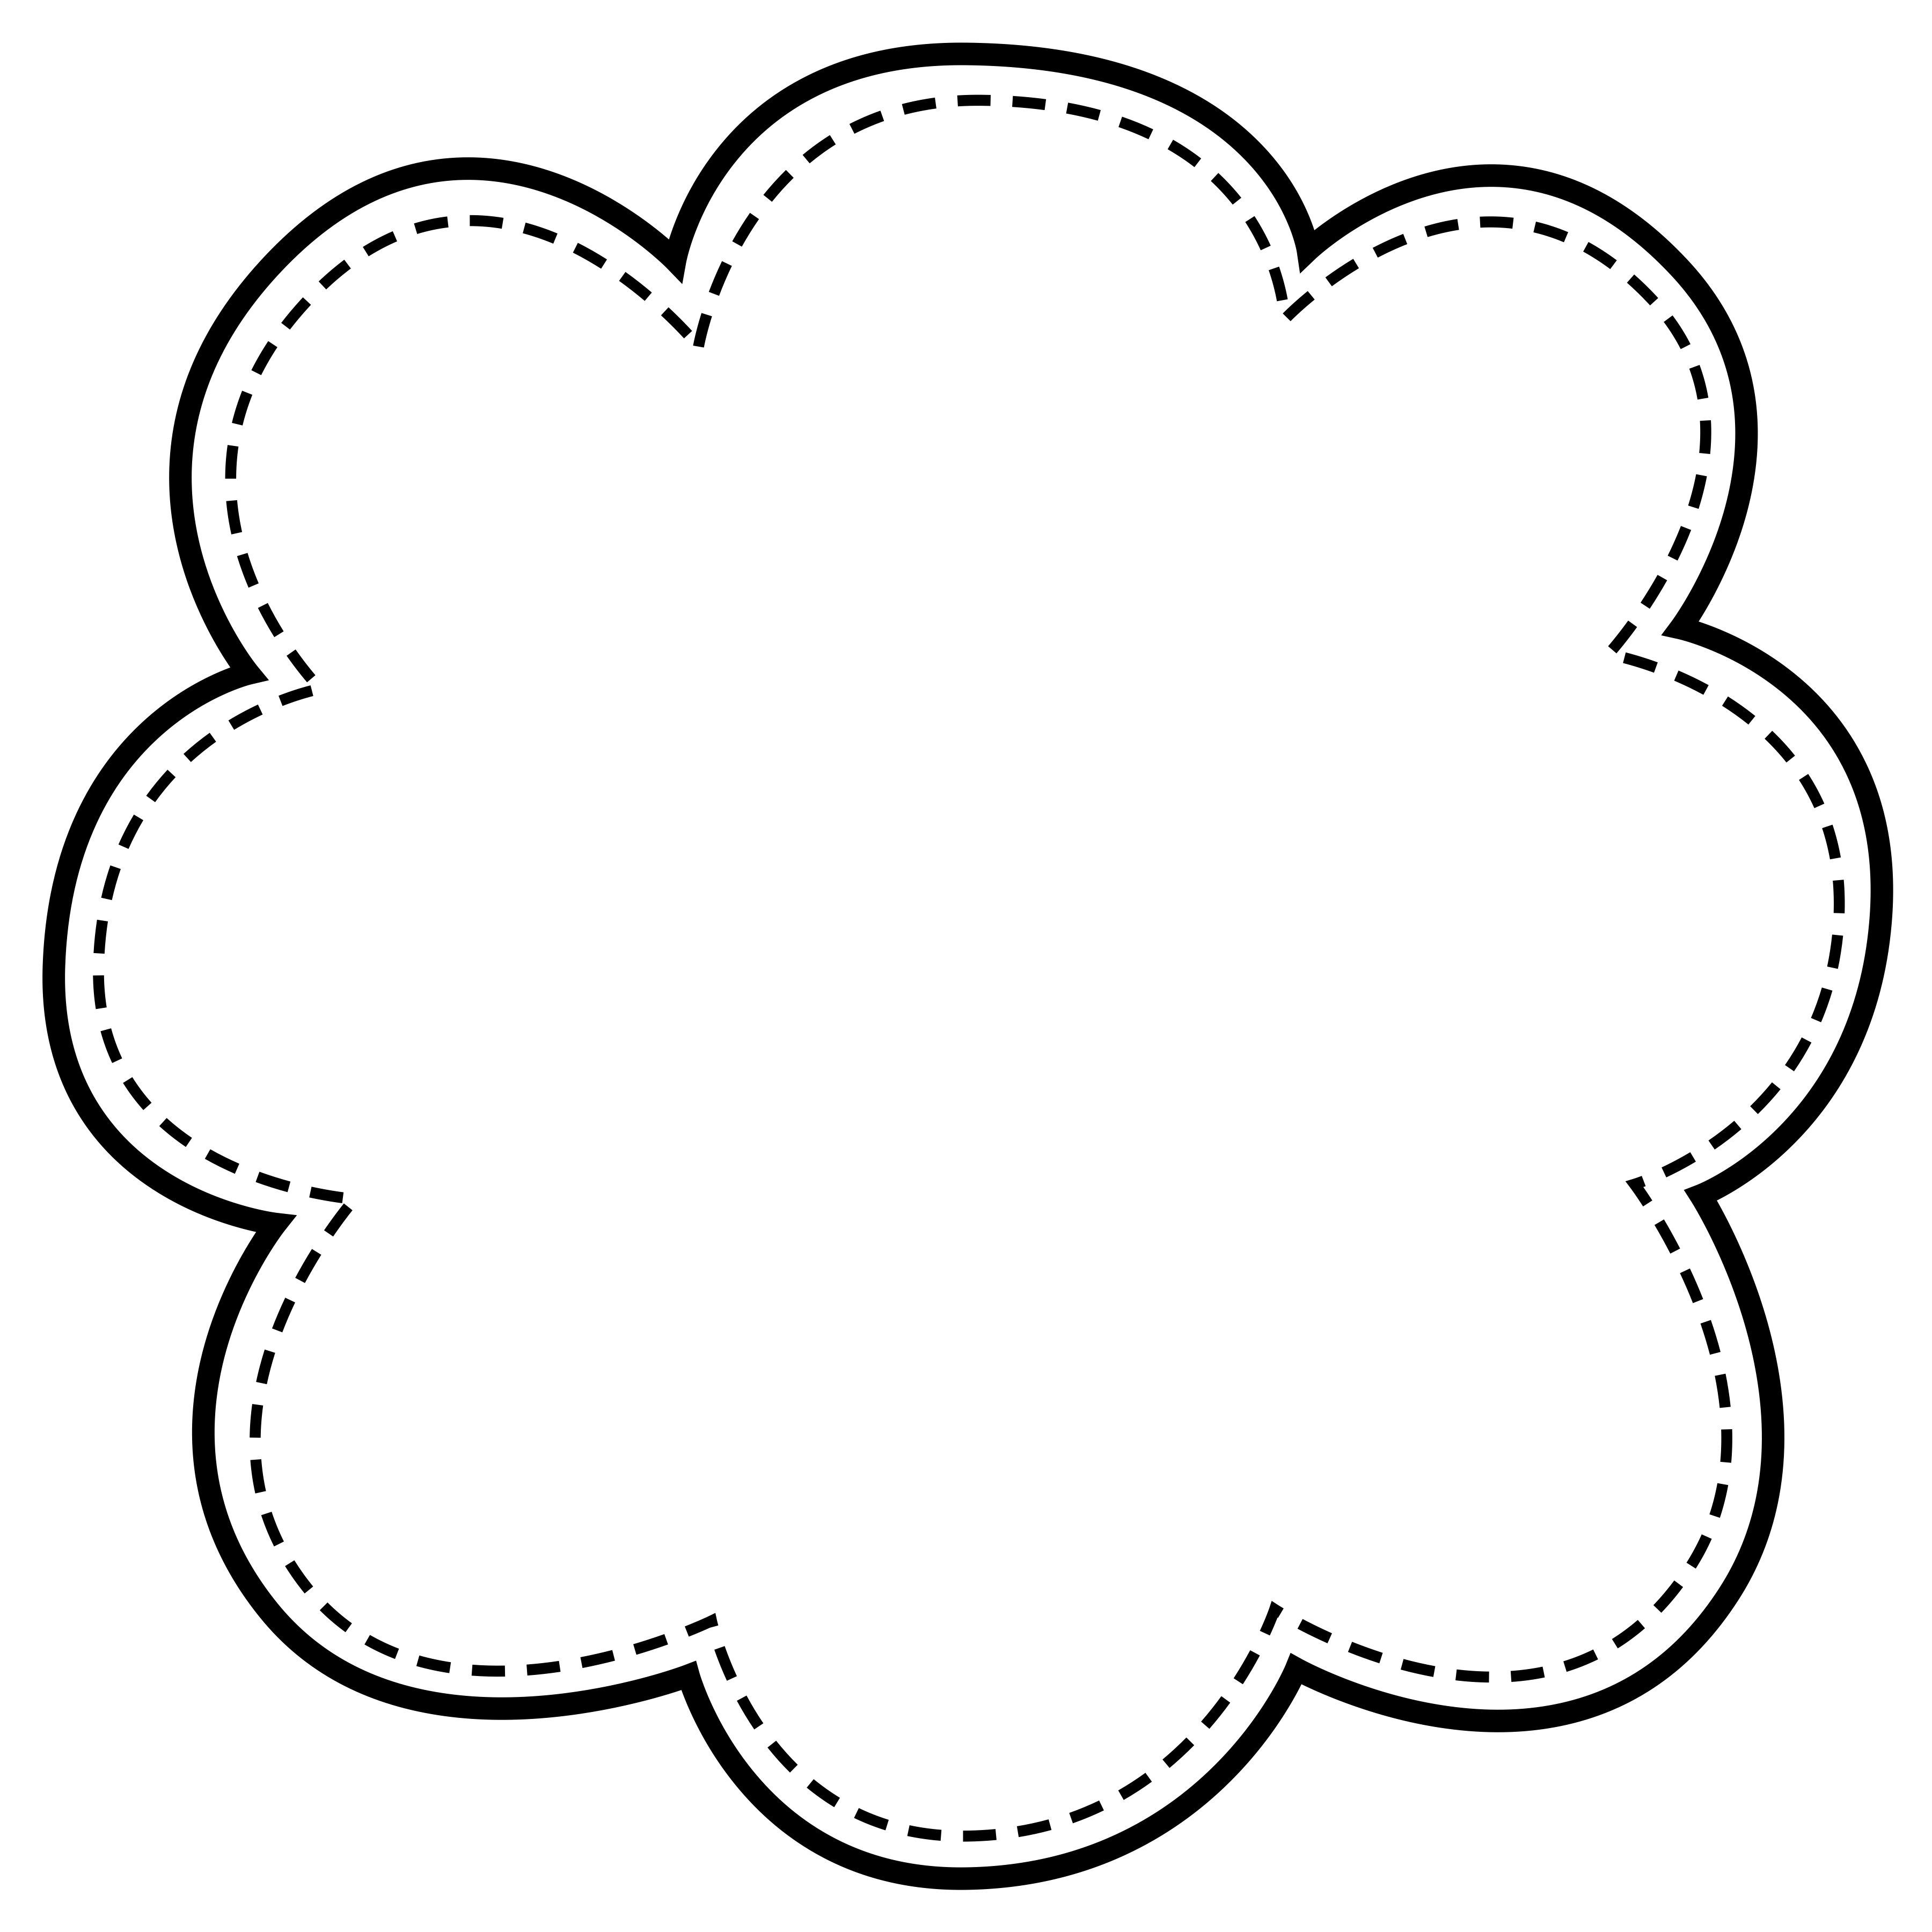 Shapes clipart doodle. Pin by jodi reed